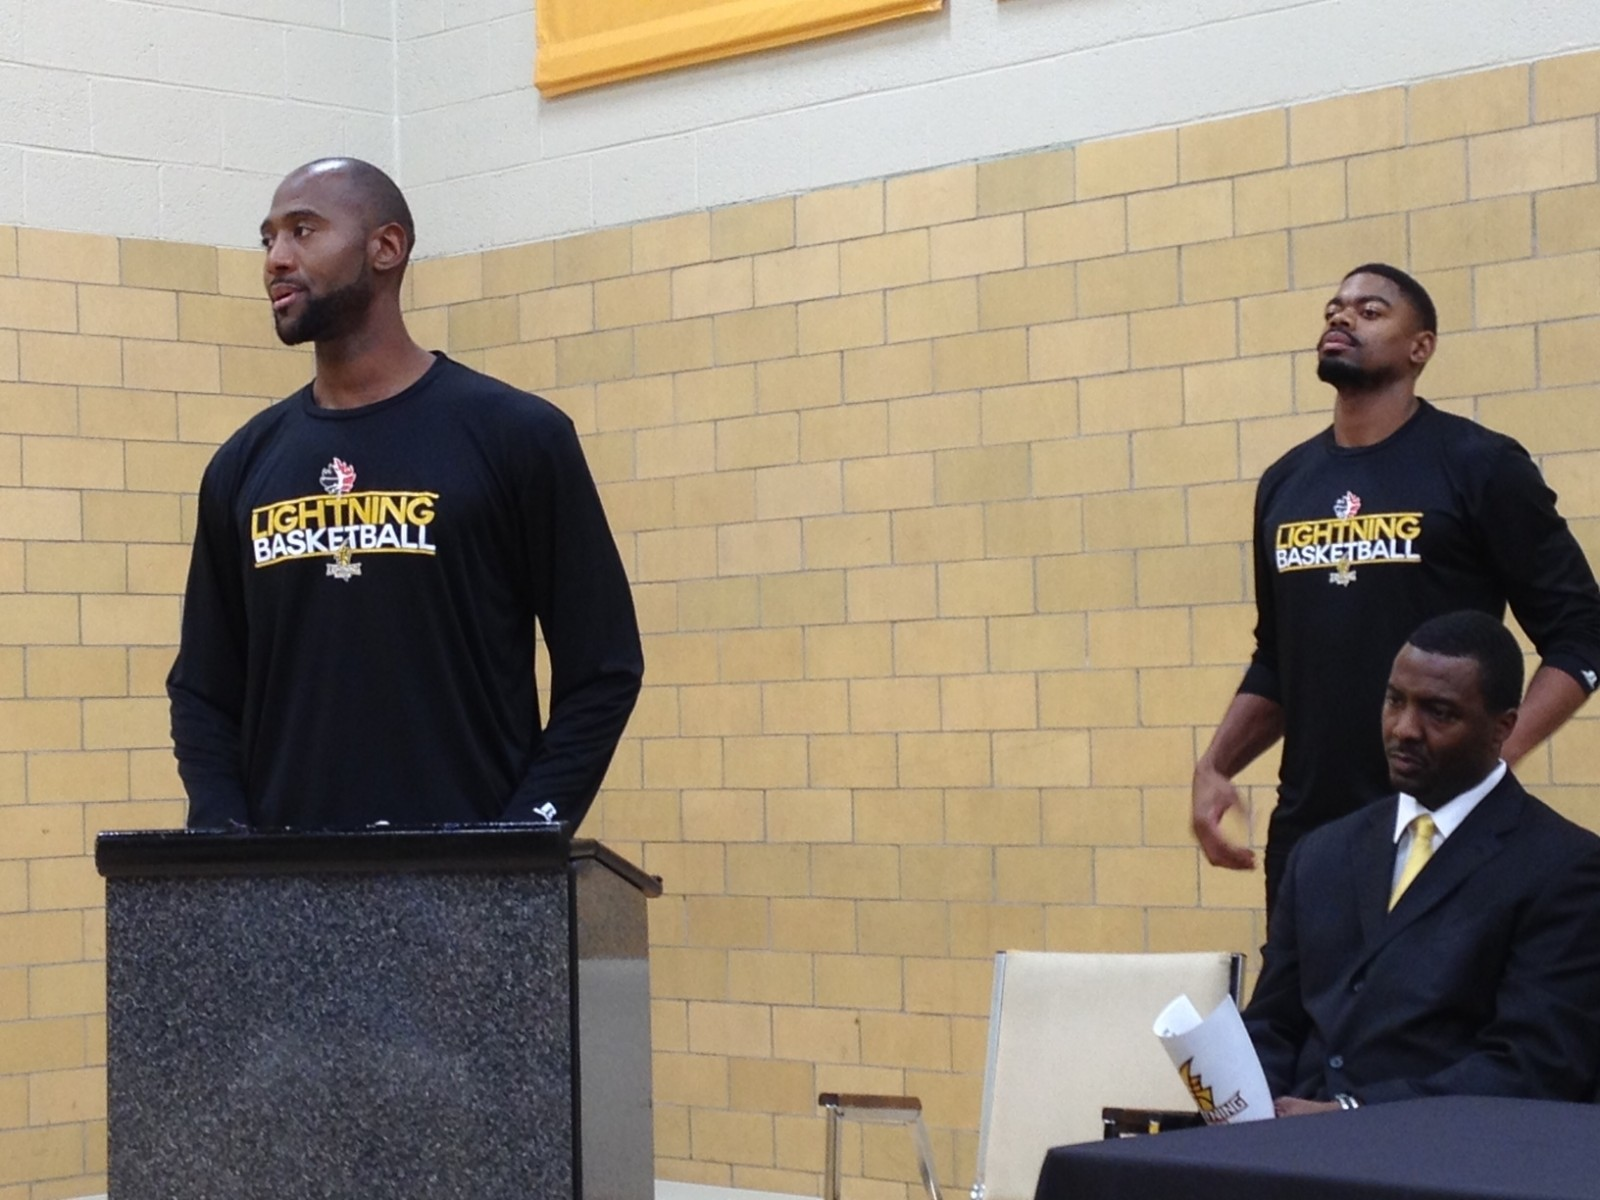 London Lightning ready to turn things around